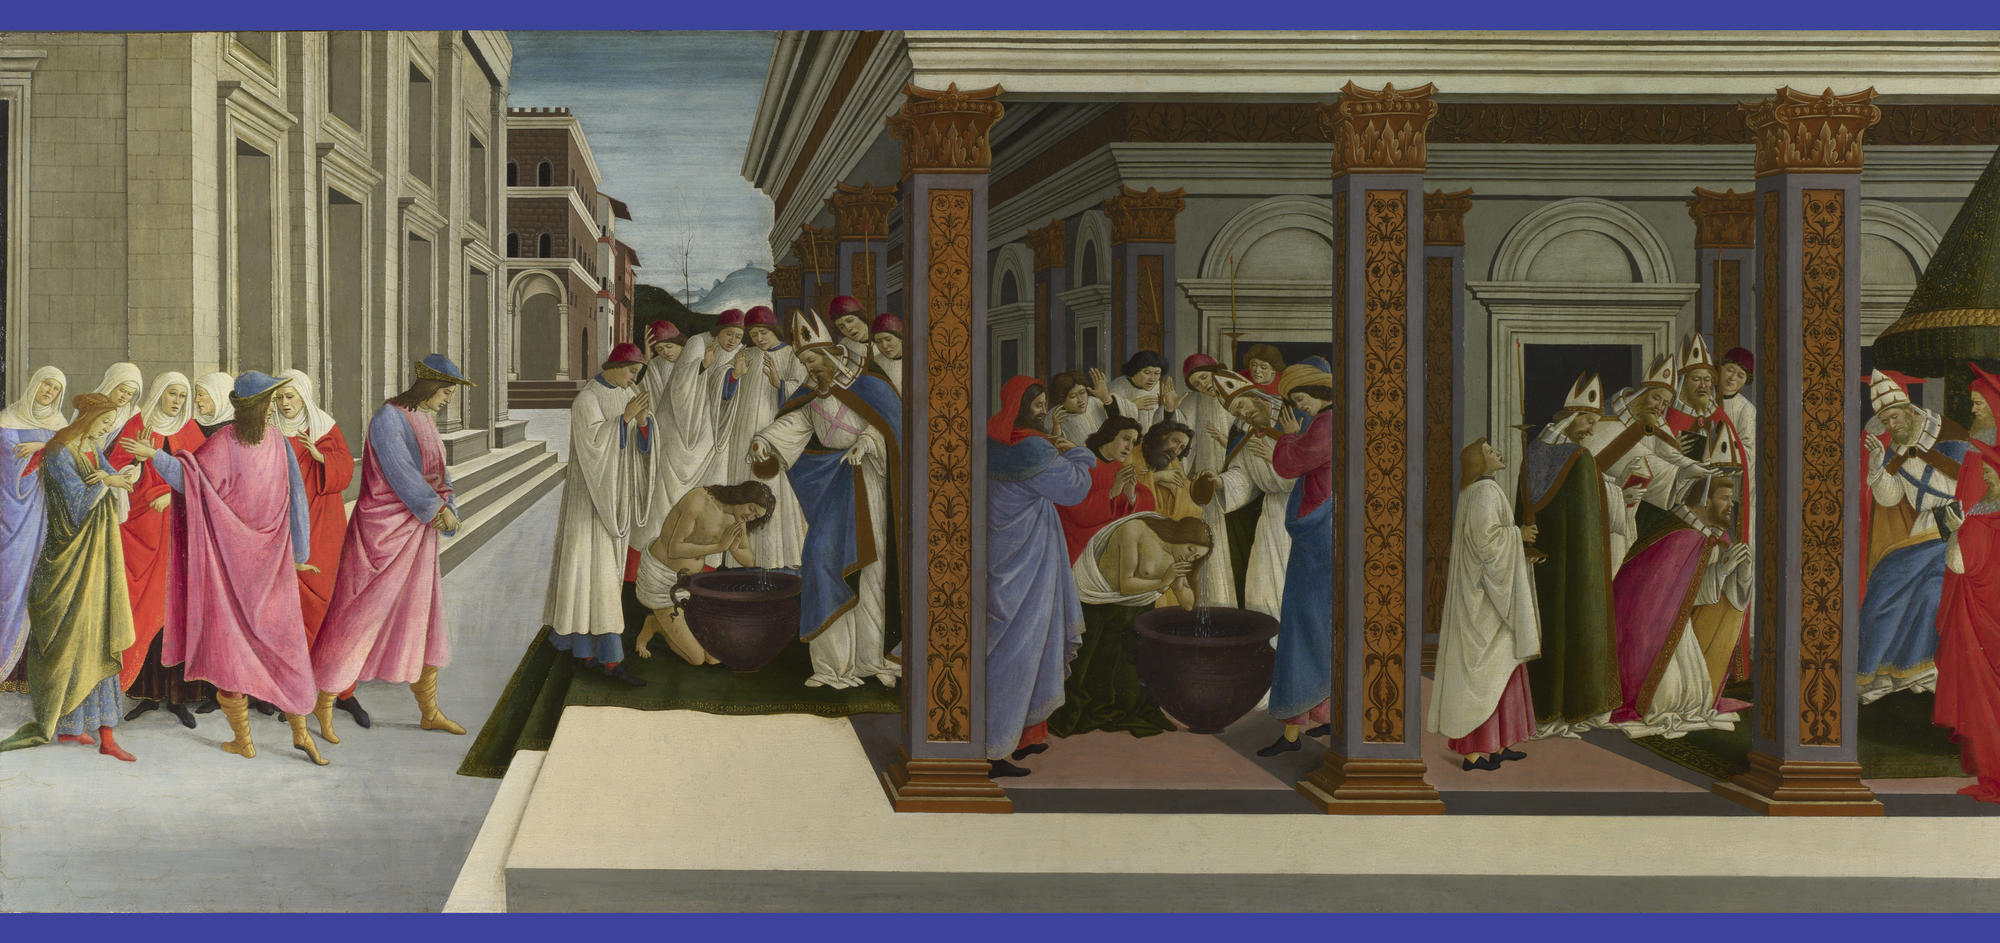 Sandro Botticelli (Italian, 1444 or 1445-1510),  Four Scenes from the Early Life of Zenobius, about 1500. Tempera on panel, 66.7 x 149.2 cm (26 1/4 x 58 3/4 in.) National Gallery, London. Ω National Gallery, London / Art Resource, NY